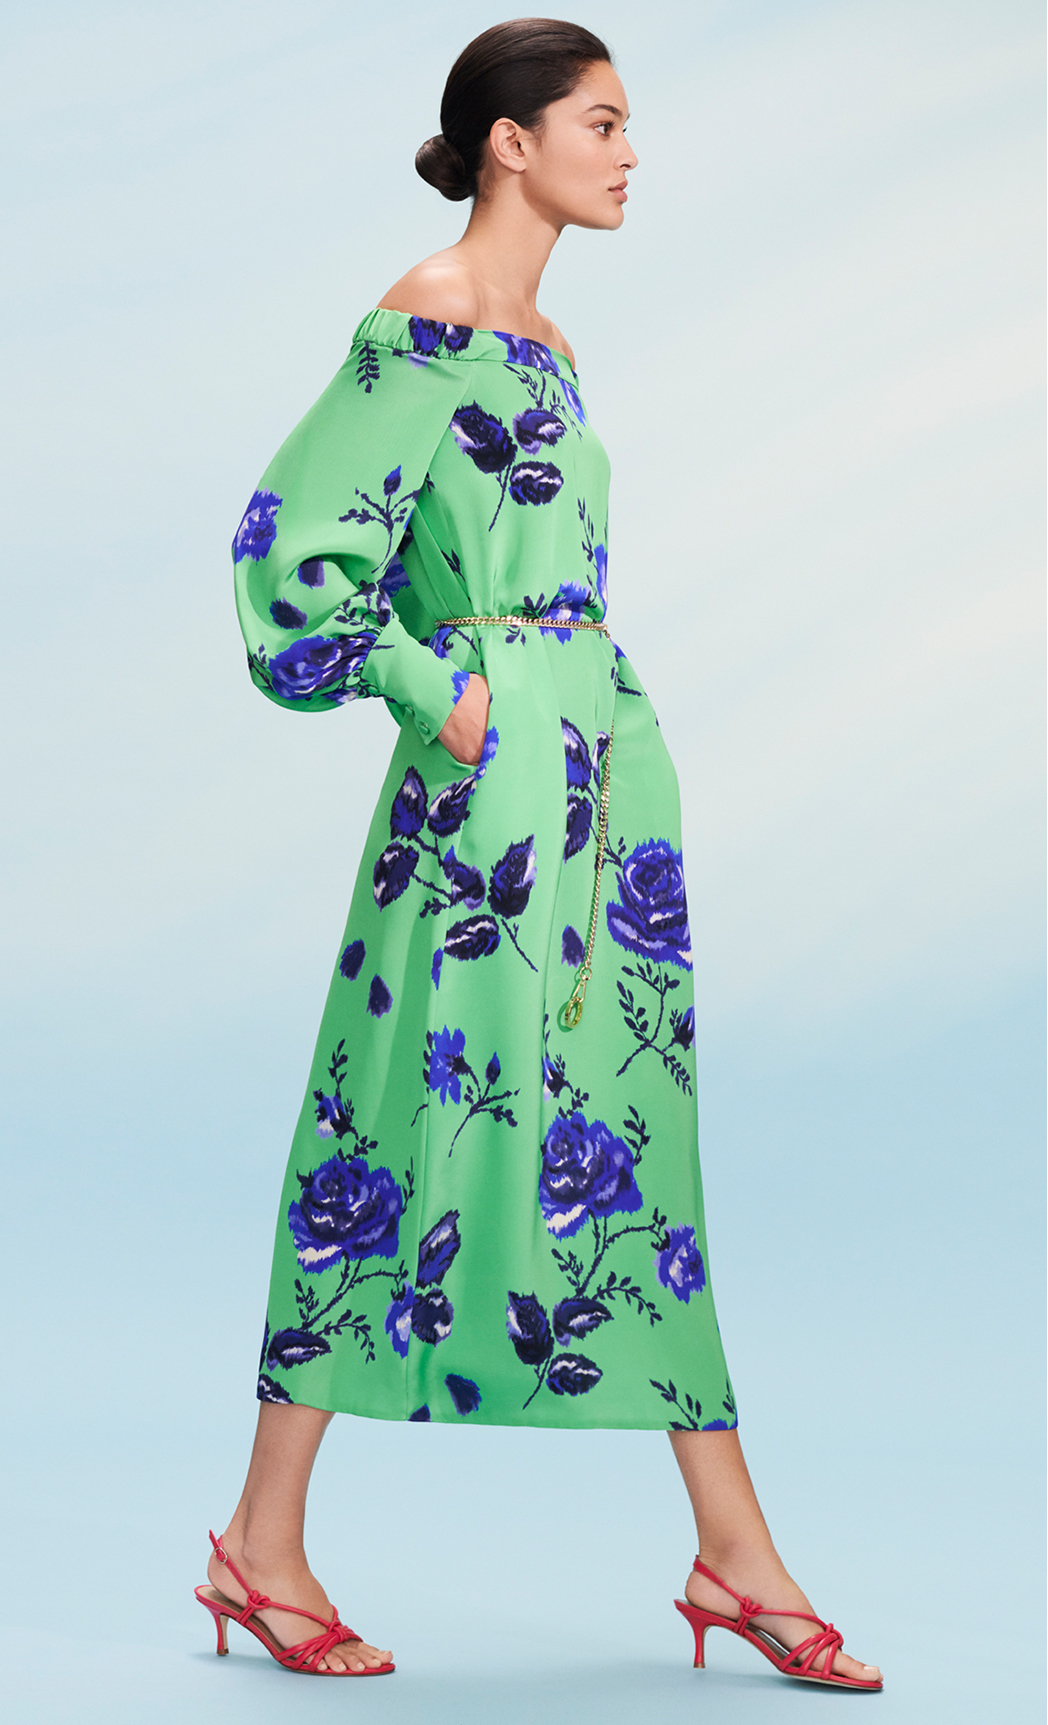 Model poses in a off the shoulder paradise green with cobalt blue floral print midi dress